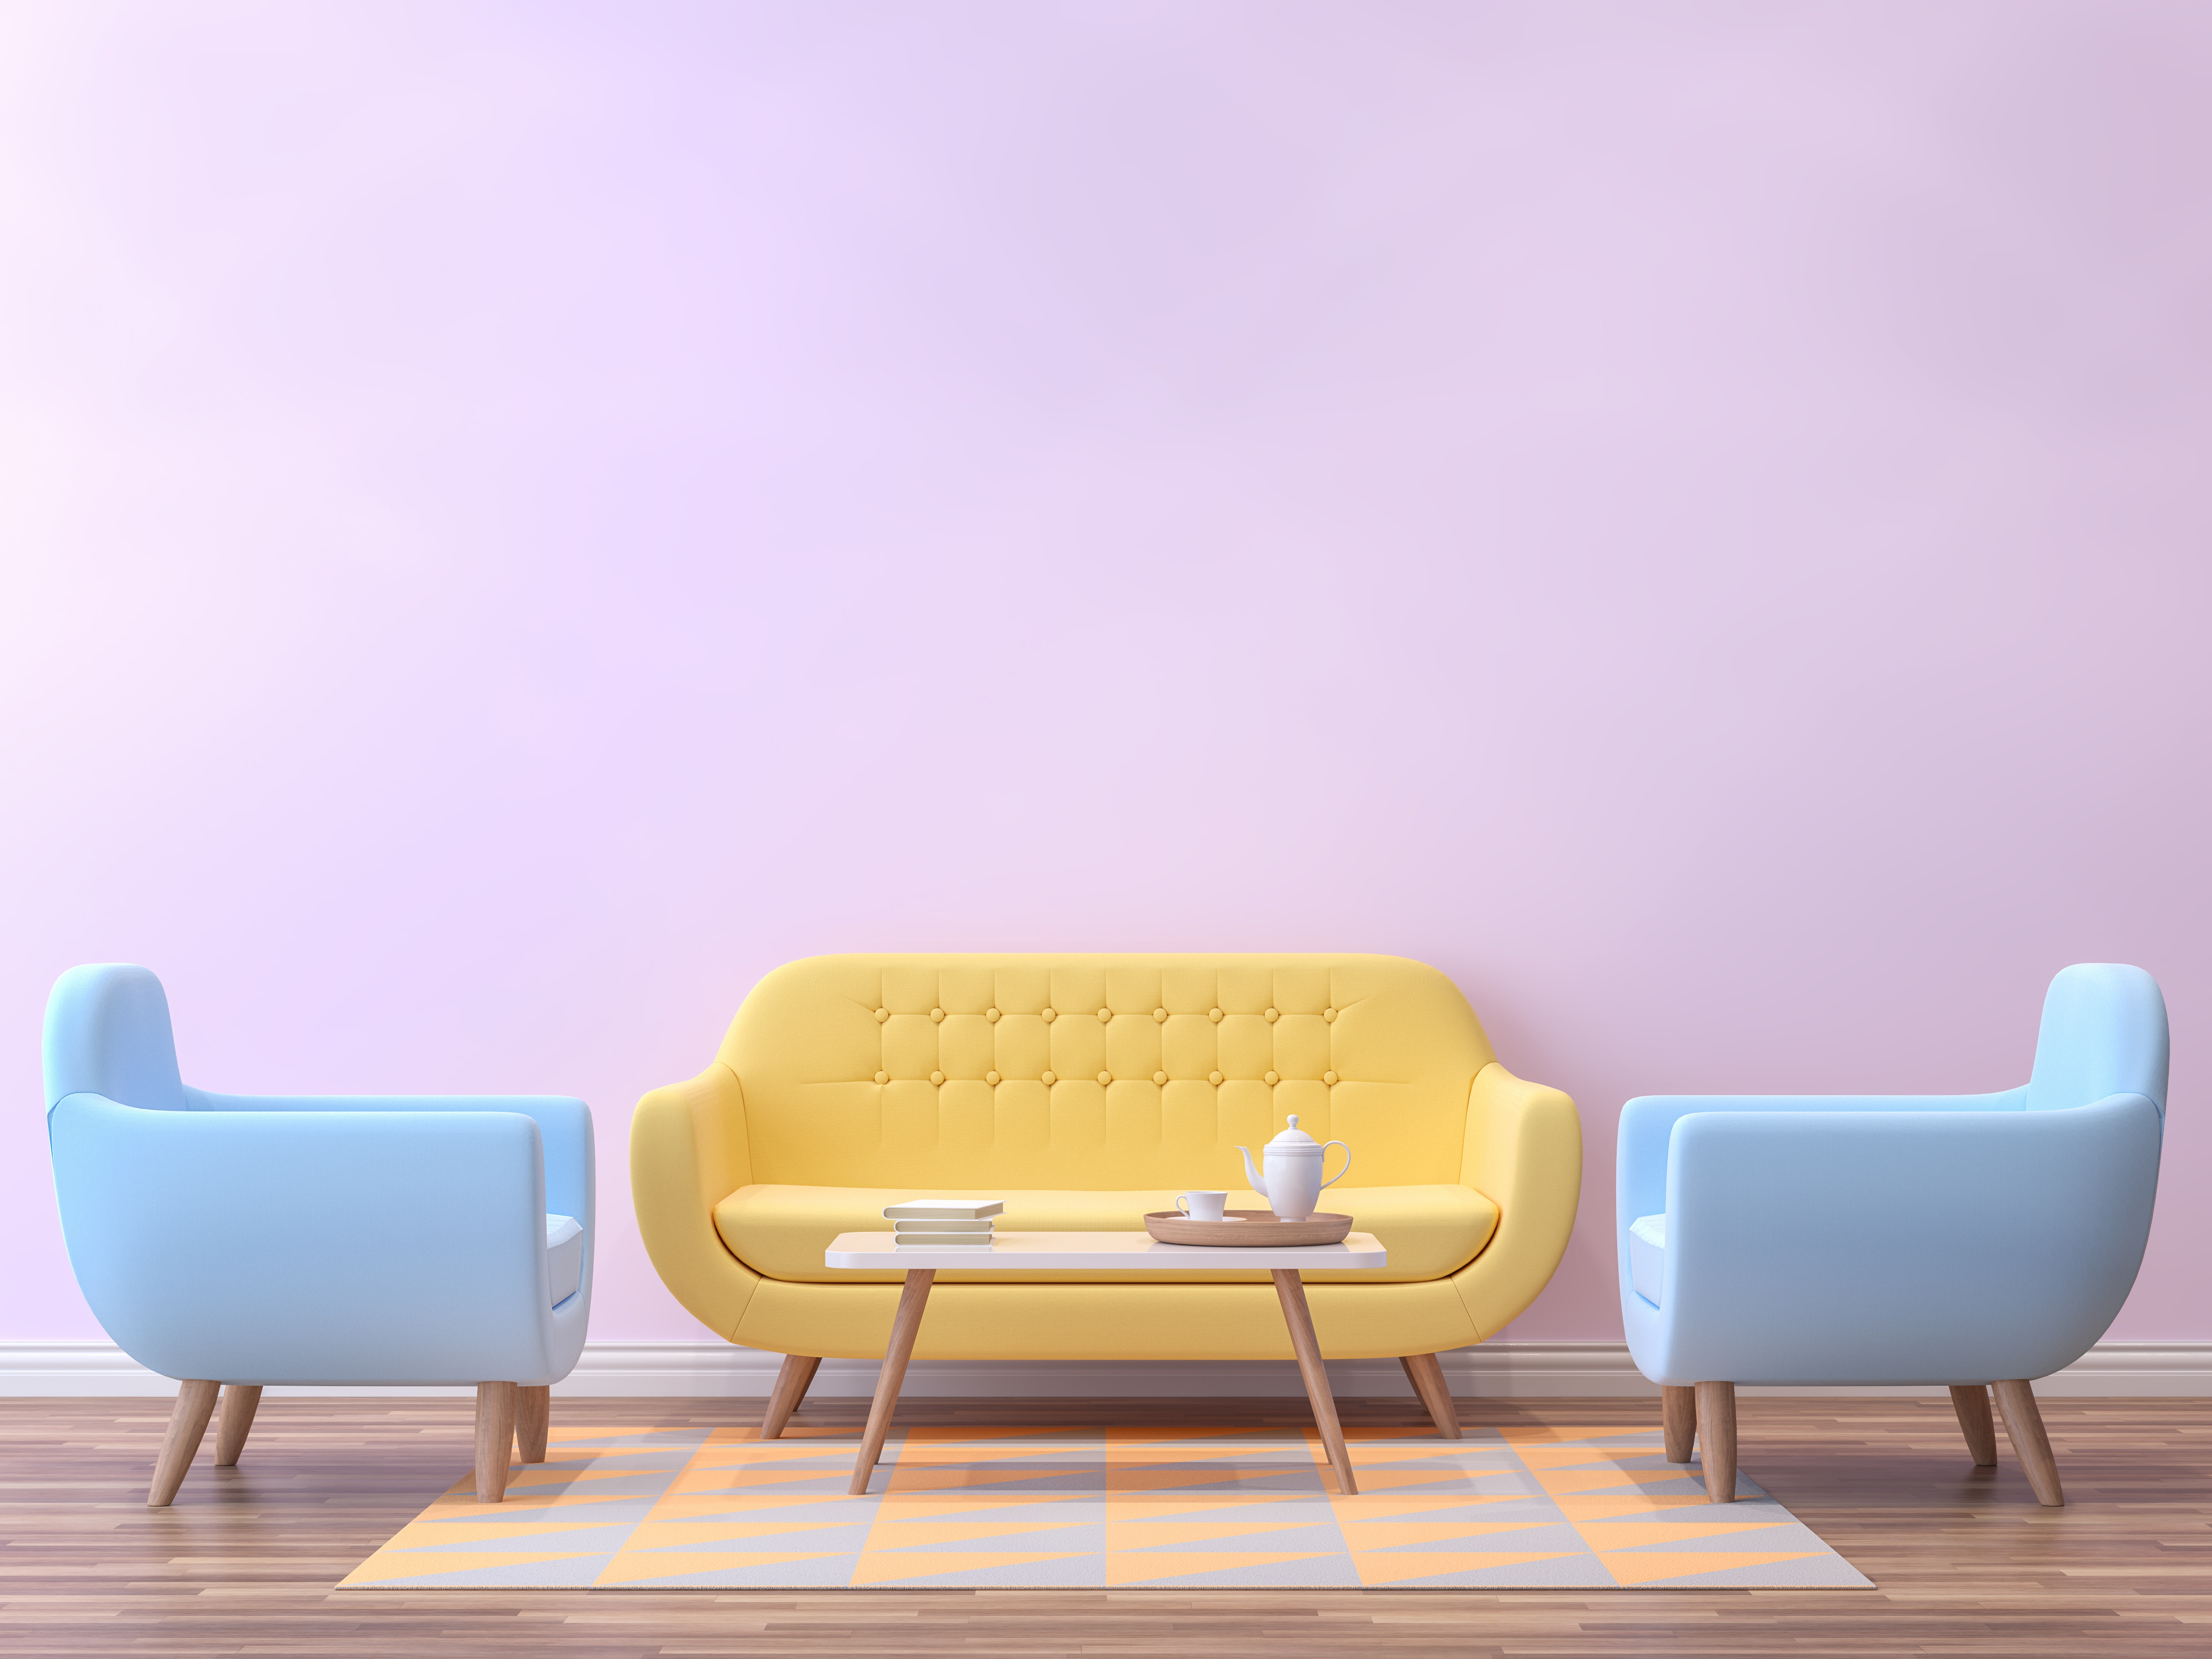 Pastel Yellow Couch And Two Blue Armchairs With